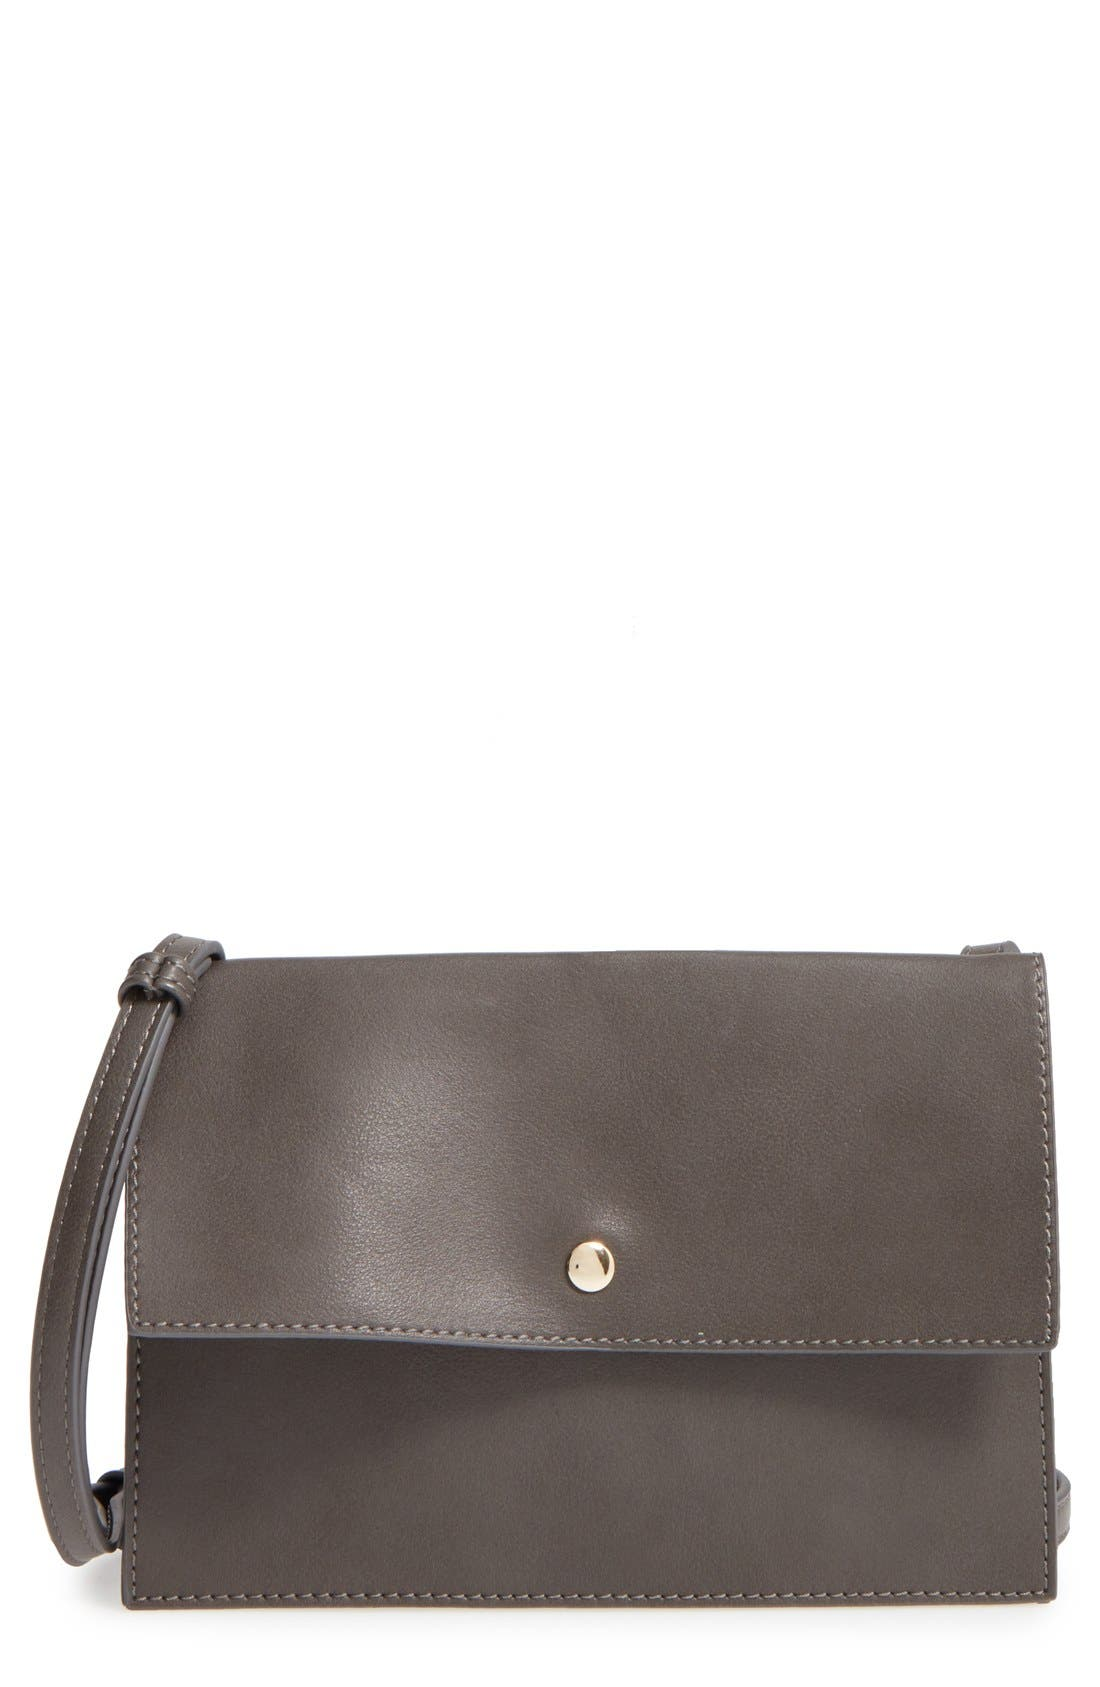 SOLE SOCIETY 'Vanessa' Faux Leather Crossbody Bag, Main, color, 020